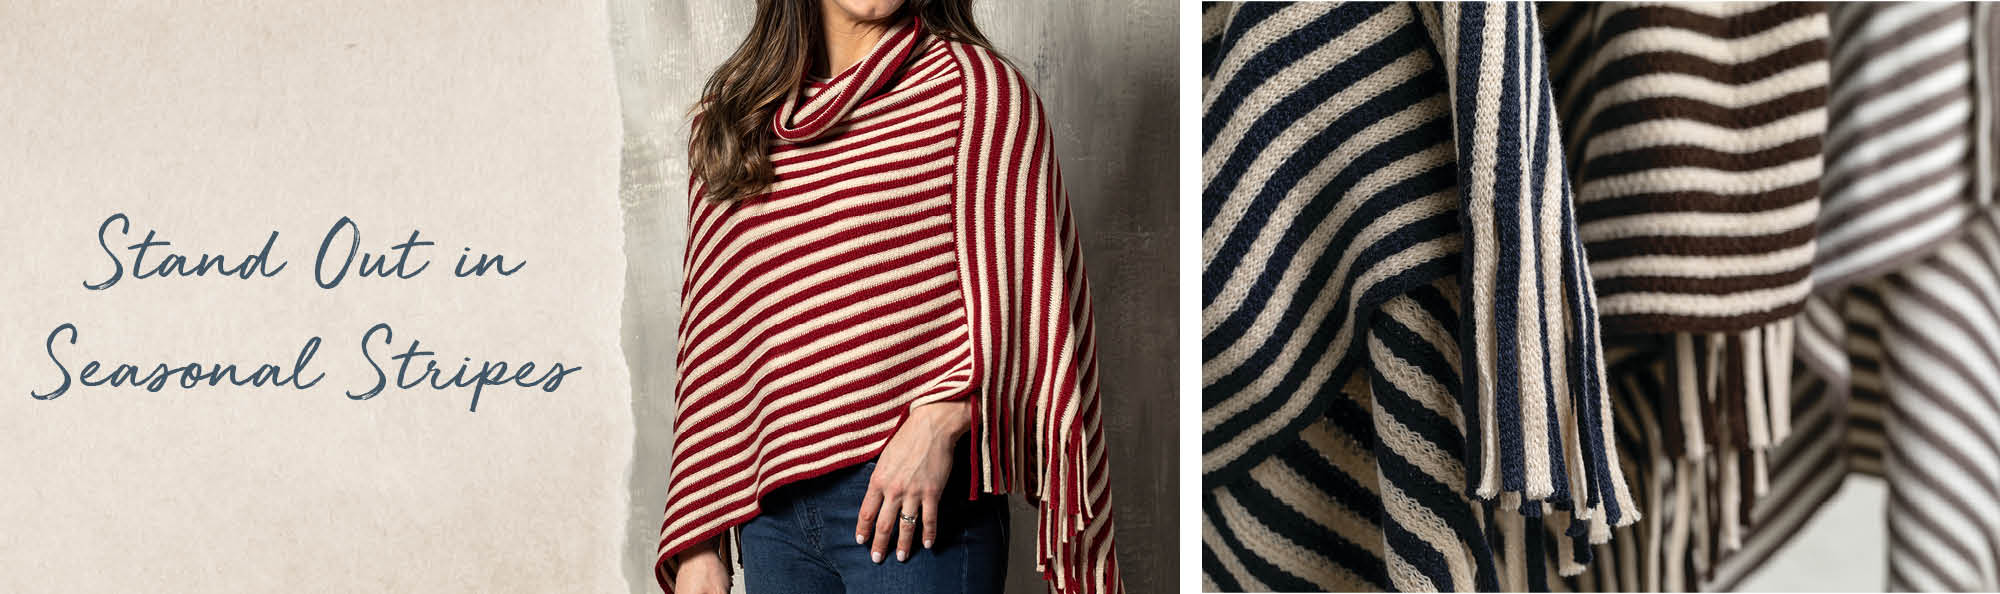 Stand out in seasonal stripes. Woman wearing a red and white striped poncho.